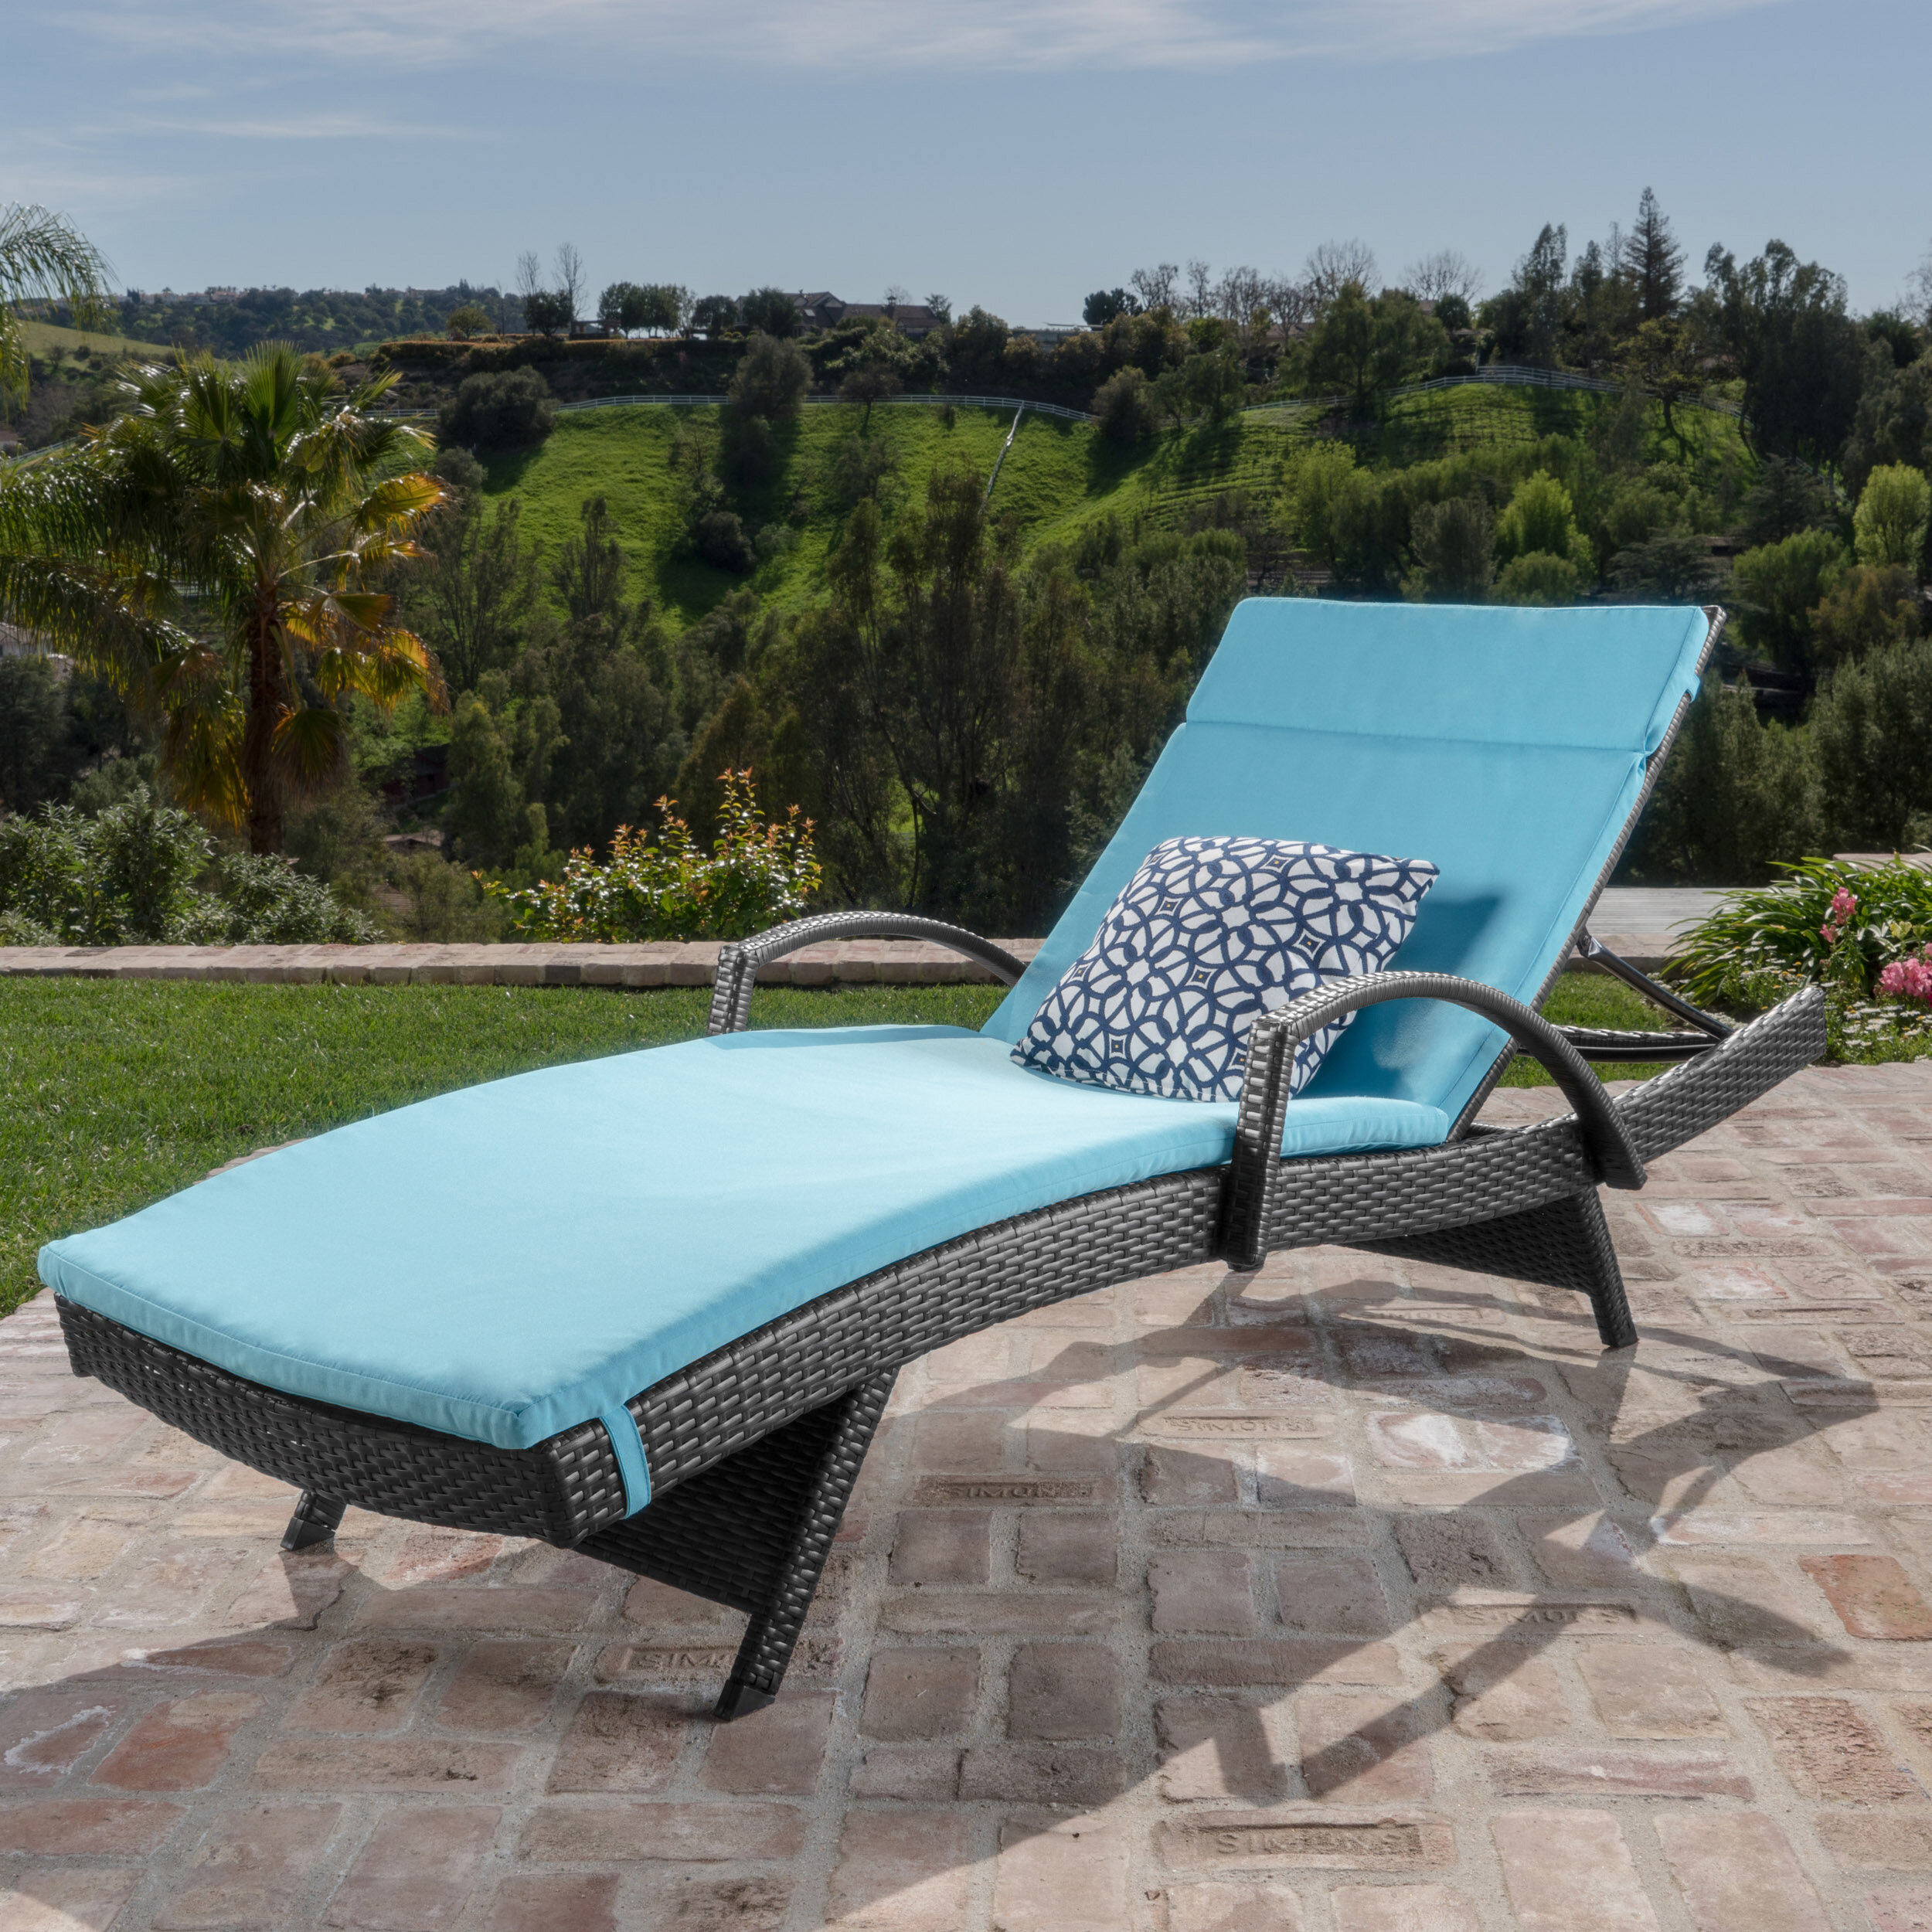 Rebello Outdoor Wicker Armed Chaise Lounge With Cushion